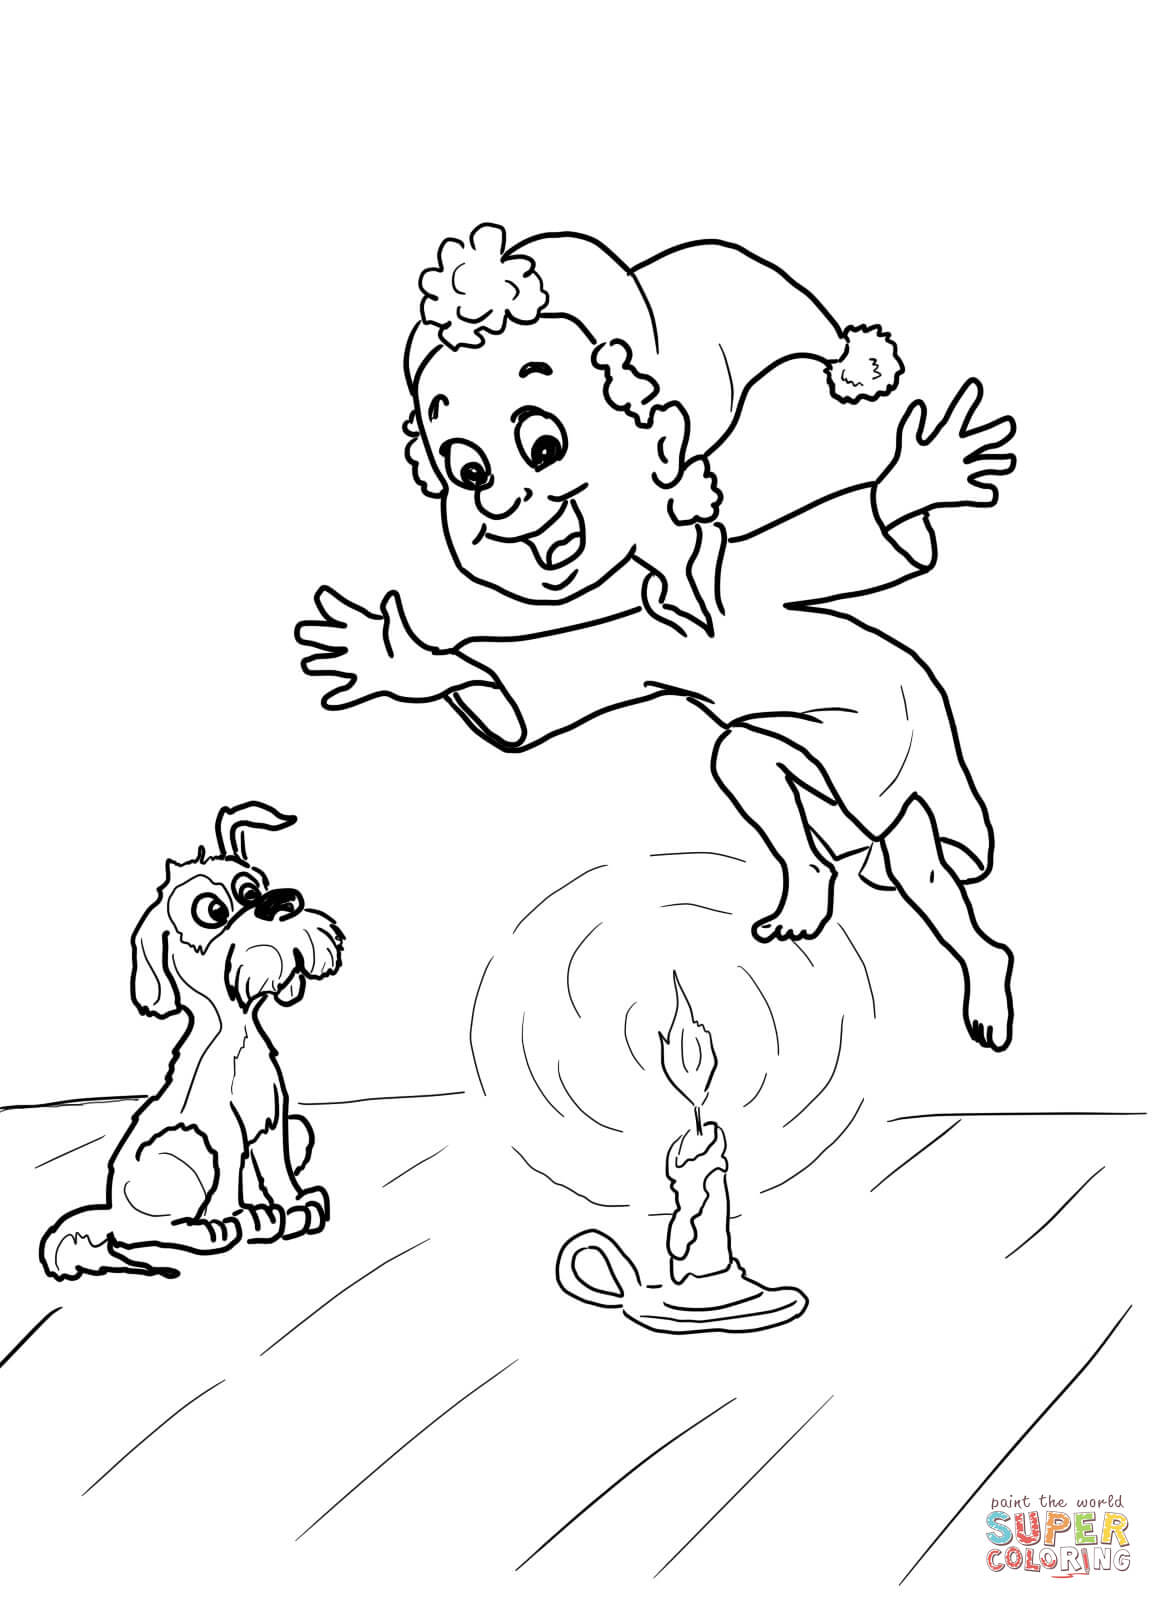 Jack Be Nimble Nursery Rhyme Coloring Page